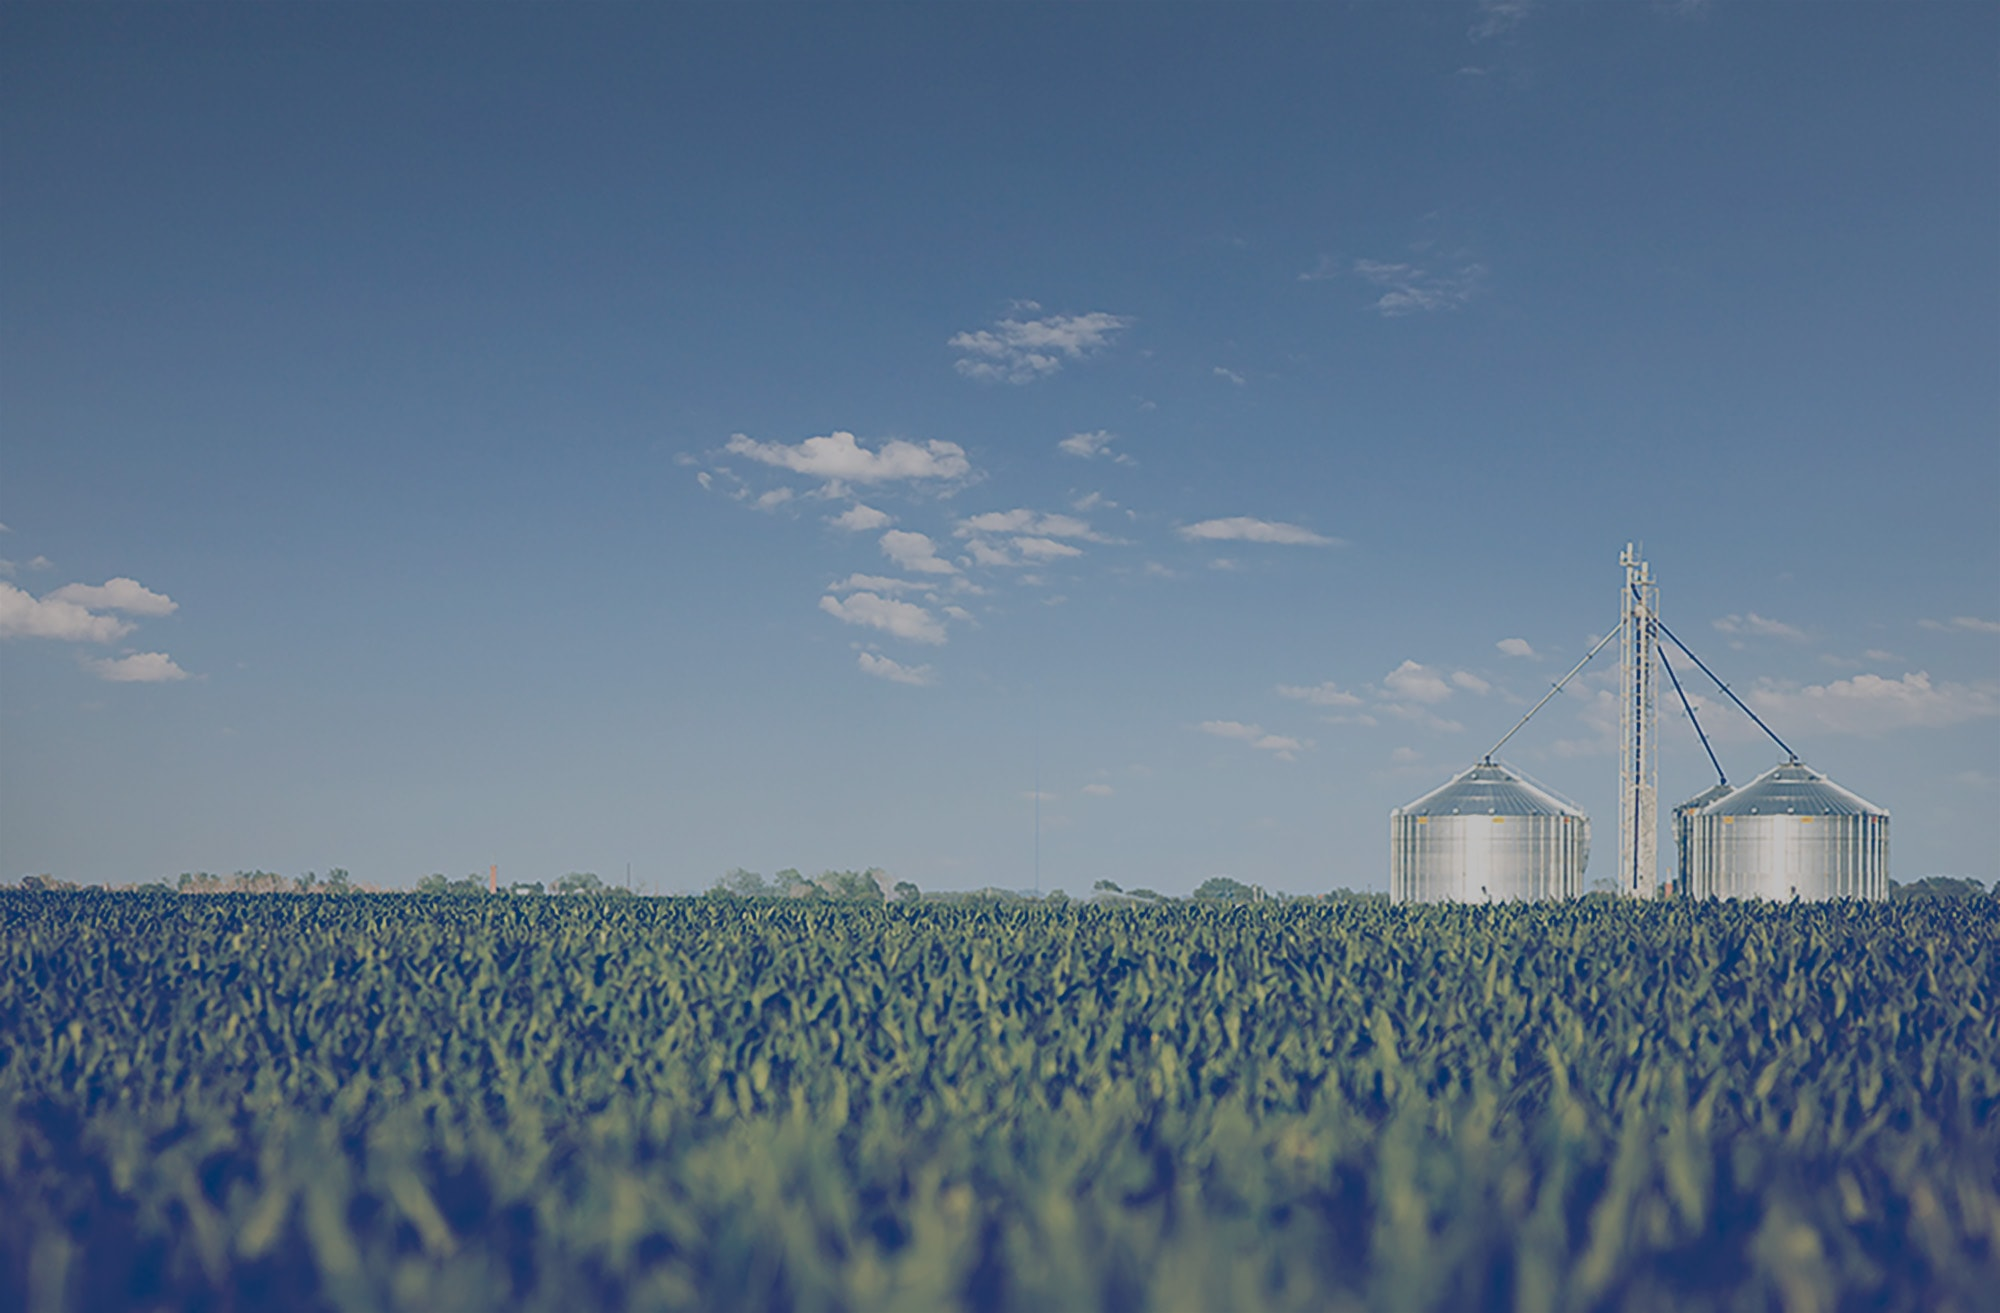 Two silos in the middle of a field.